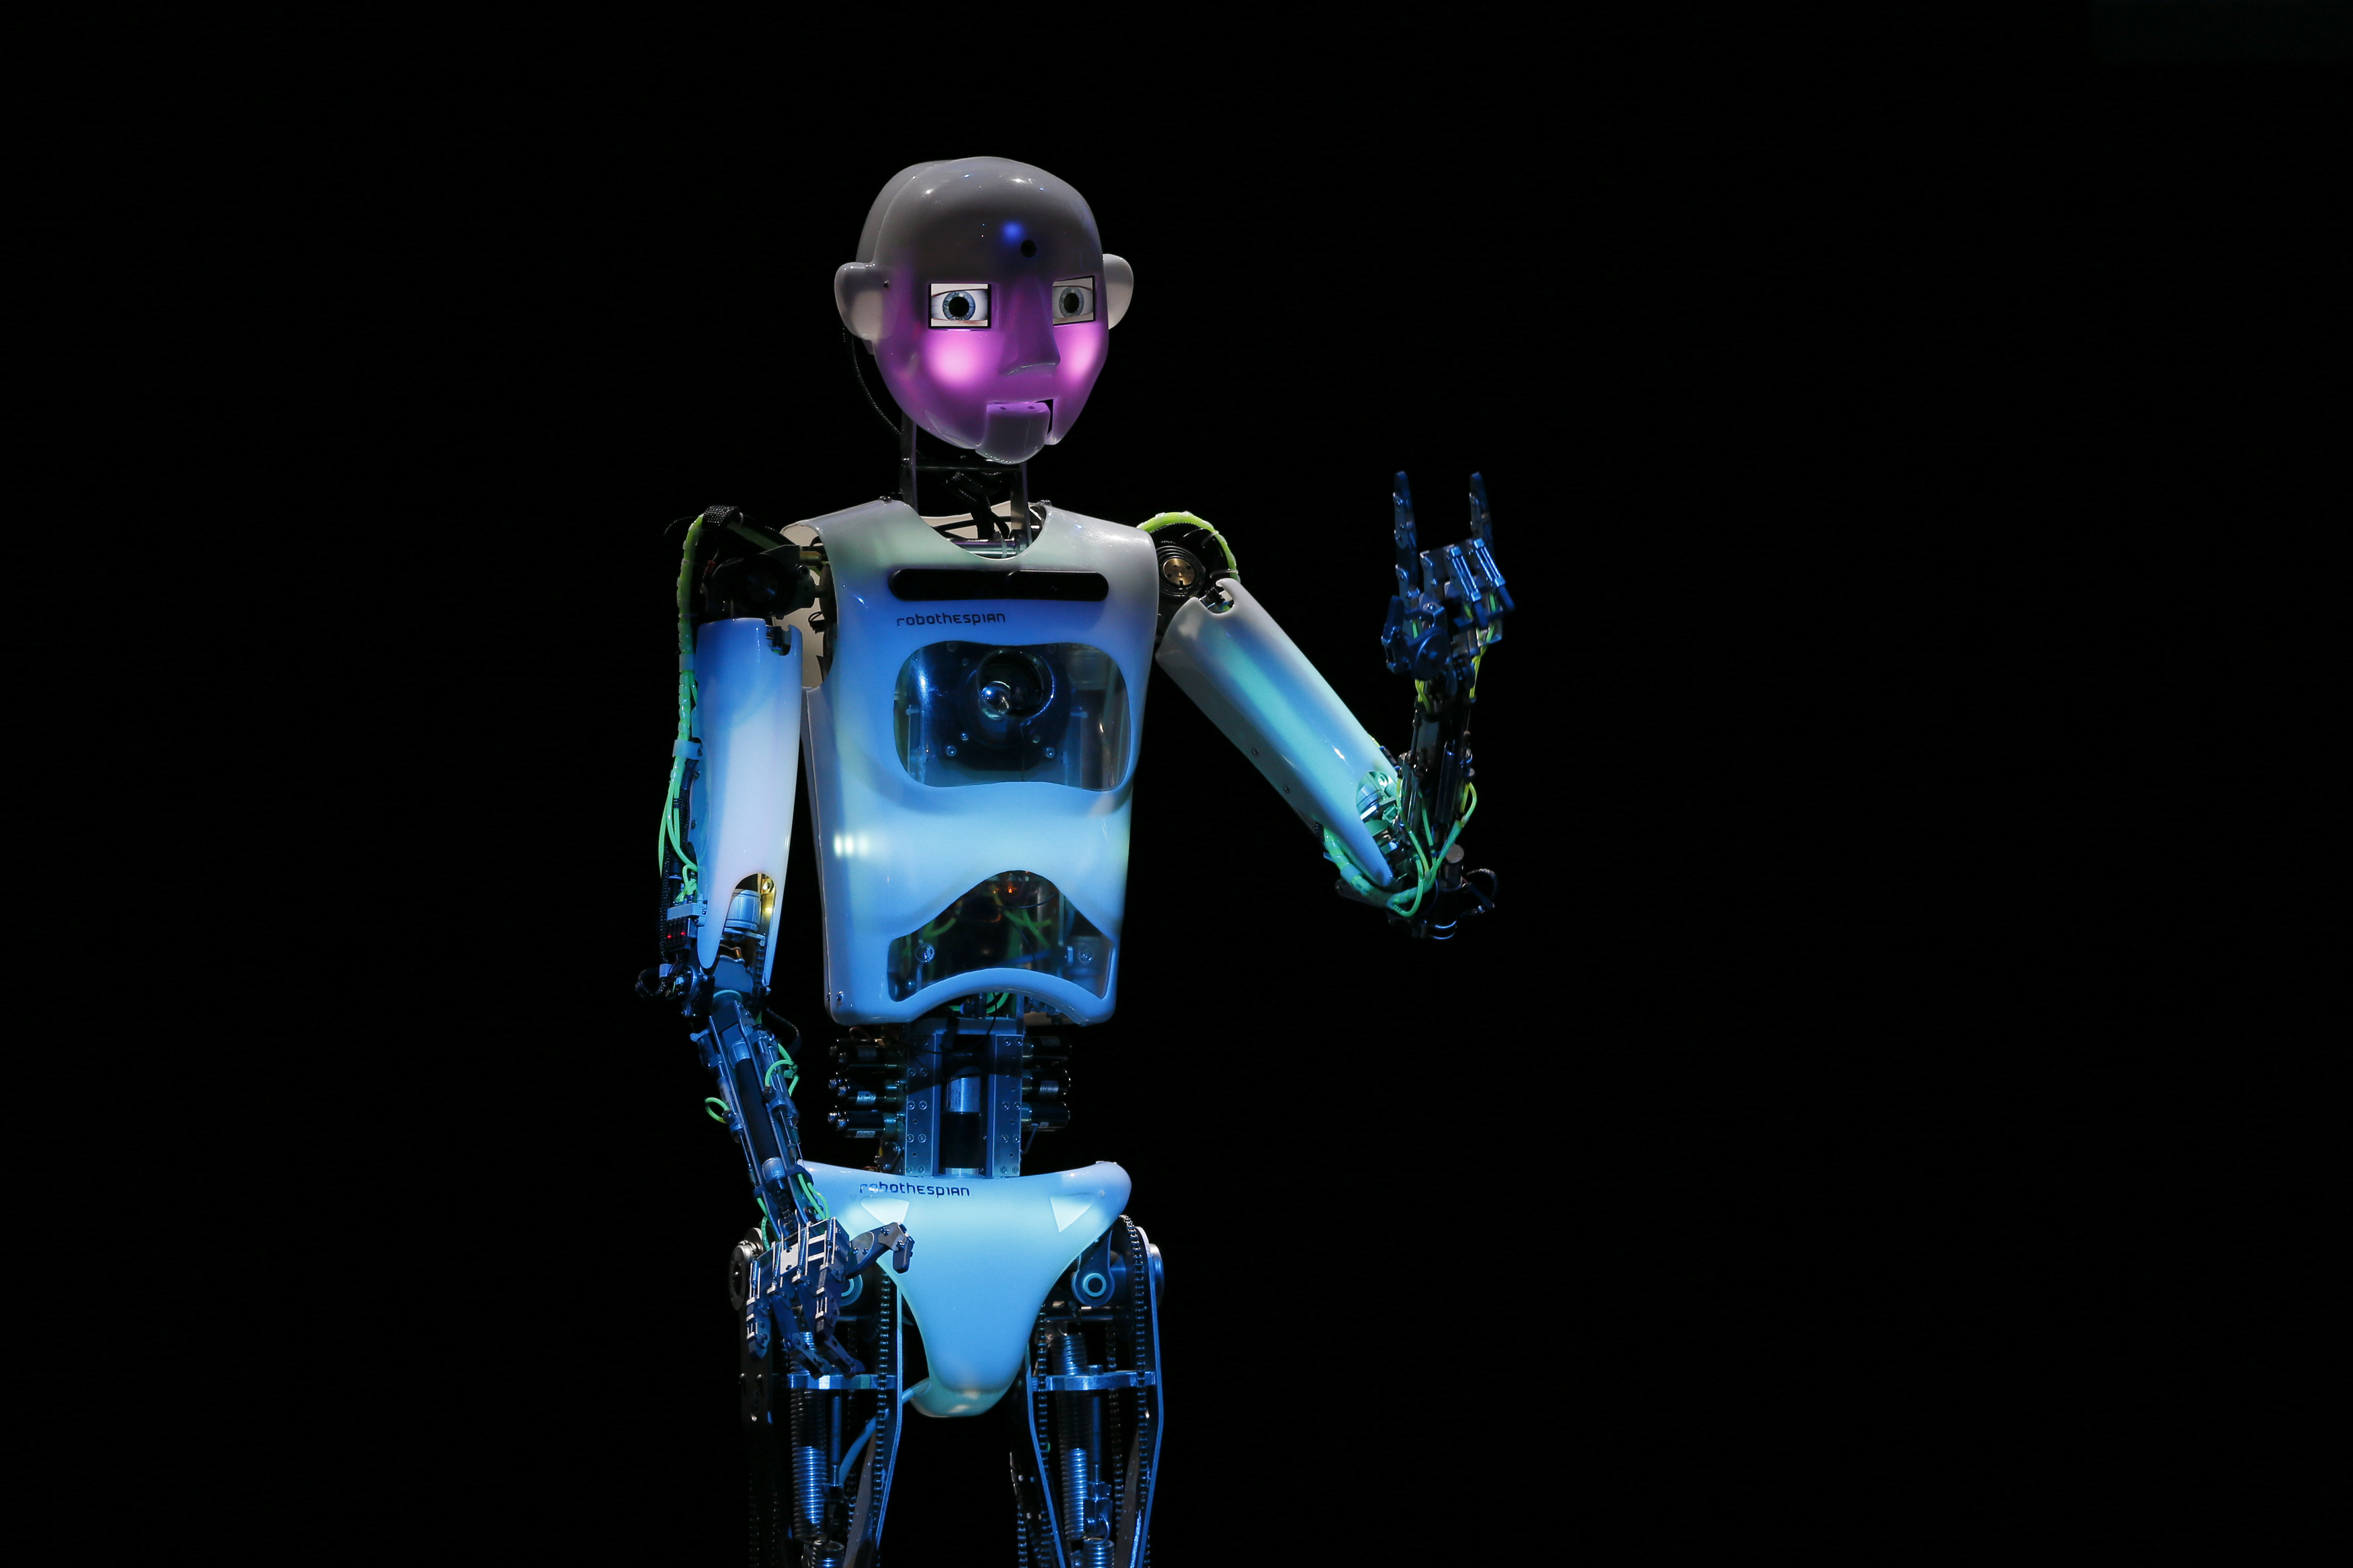 Humanoid robot of British company RoboThespian blushes during the opening ceremony of the Hanover technology fair Cebit